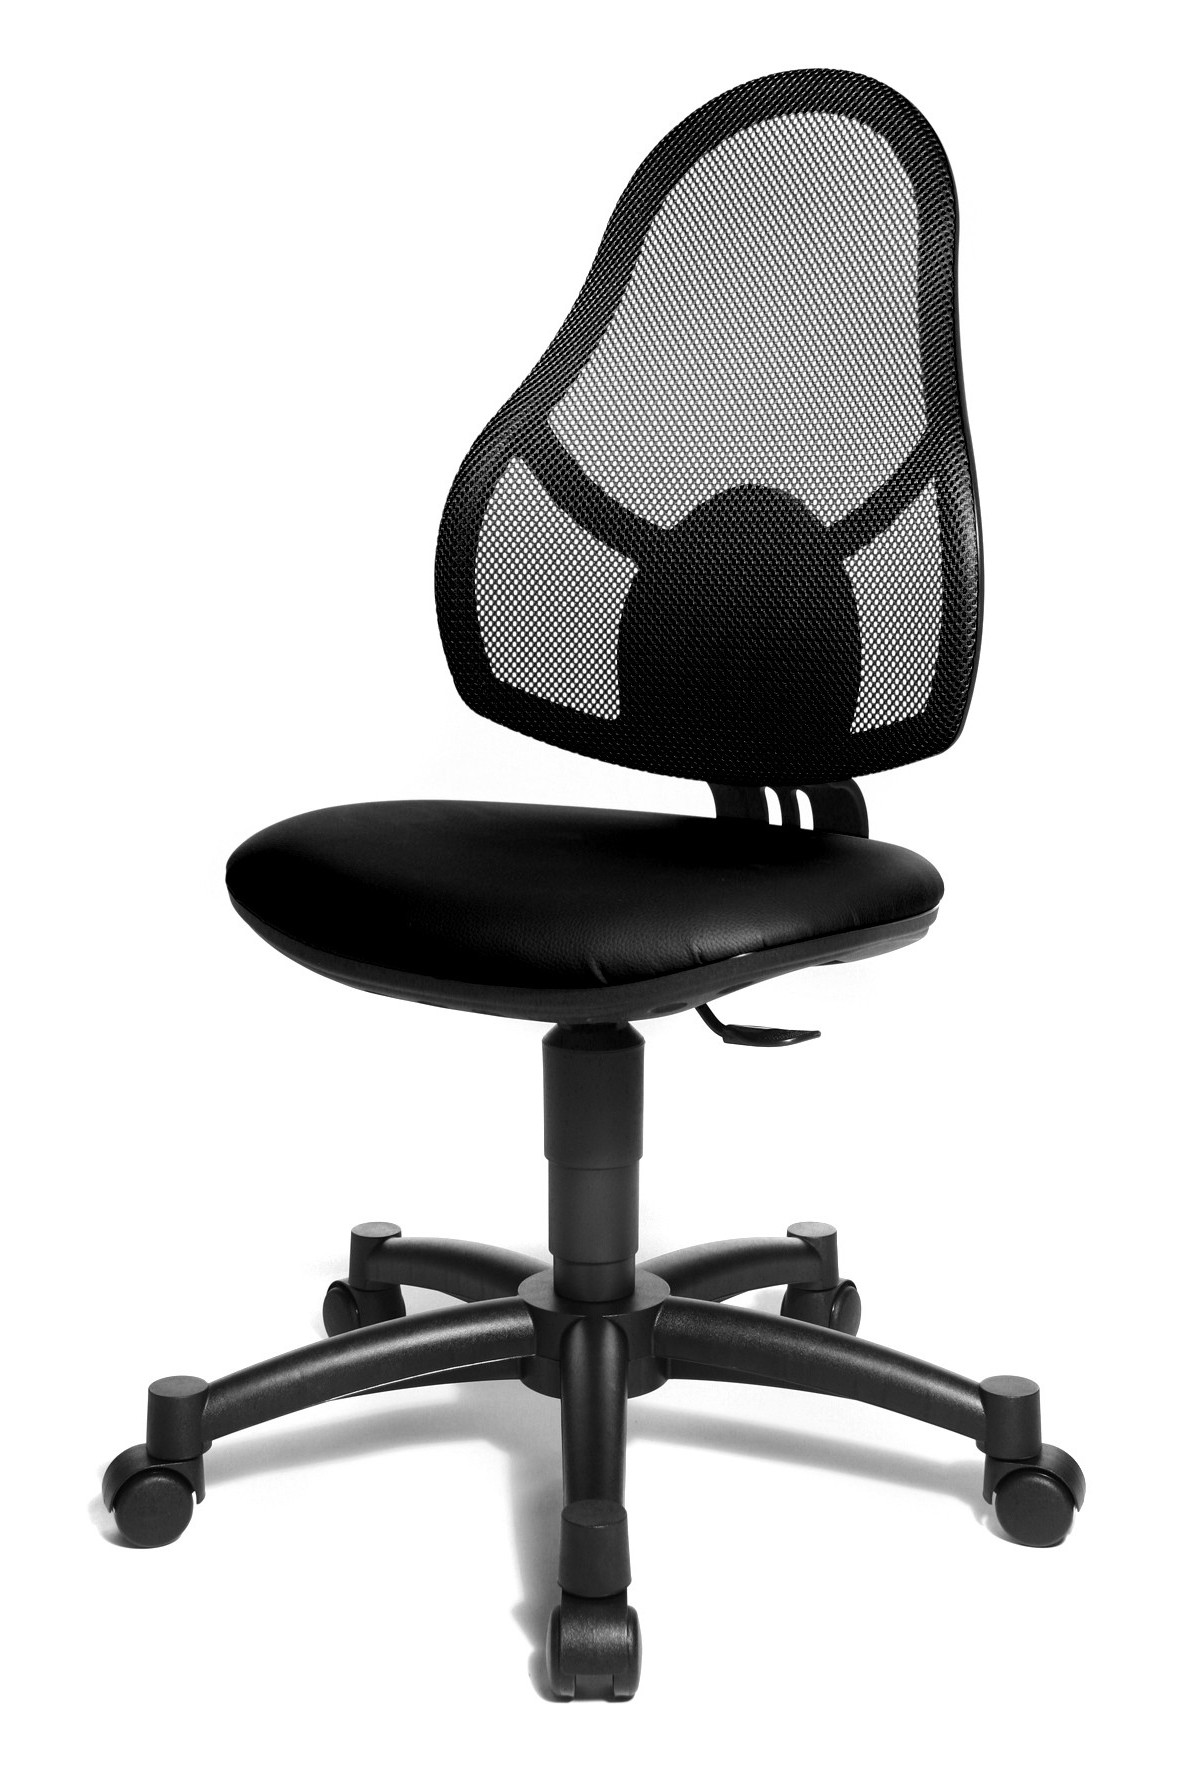 Chaise de bureau ado design chaise id es de d coration for Chaise de bureau design